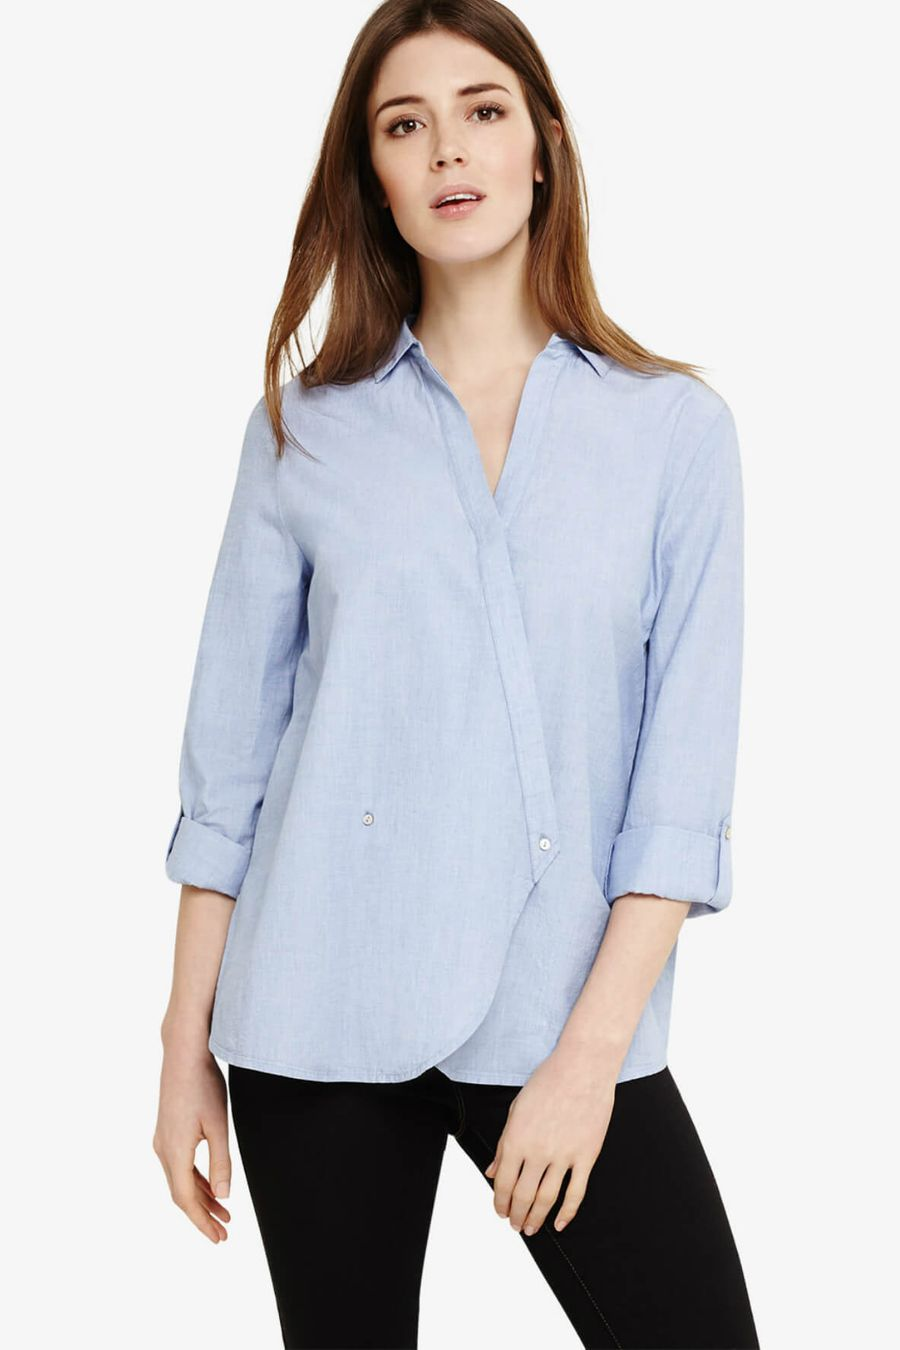 phase-eight-gianna-cross-over-blouse-3